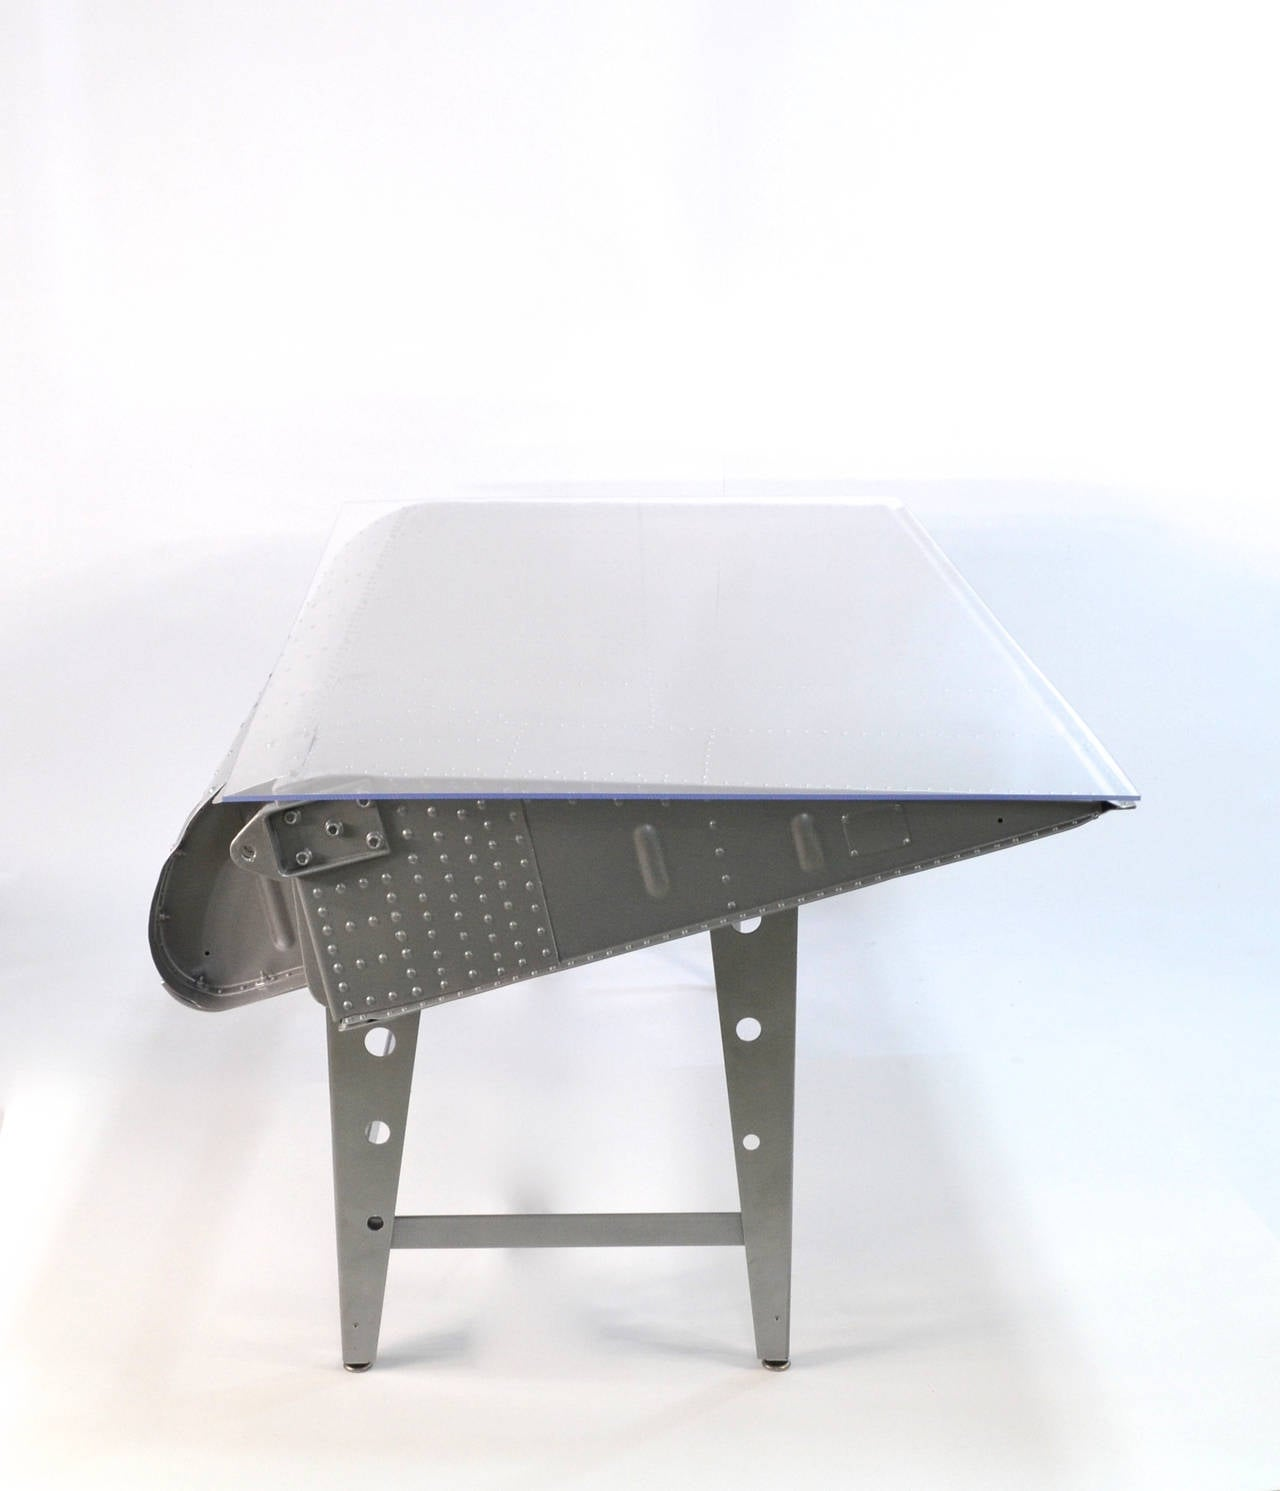 Airplane Wing Coffee Table Authentic Airplane Wing Desk From Original Wwii Wing 68 For Sale